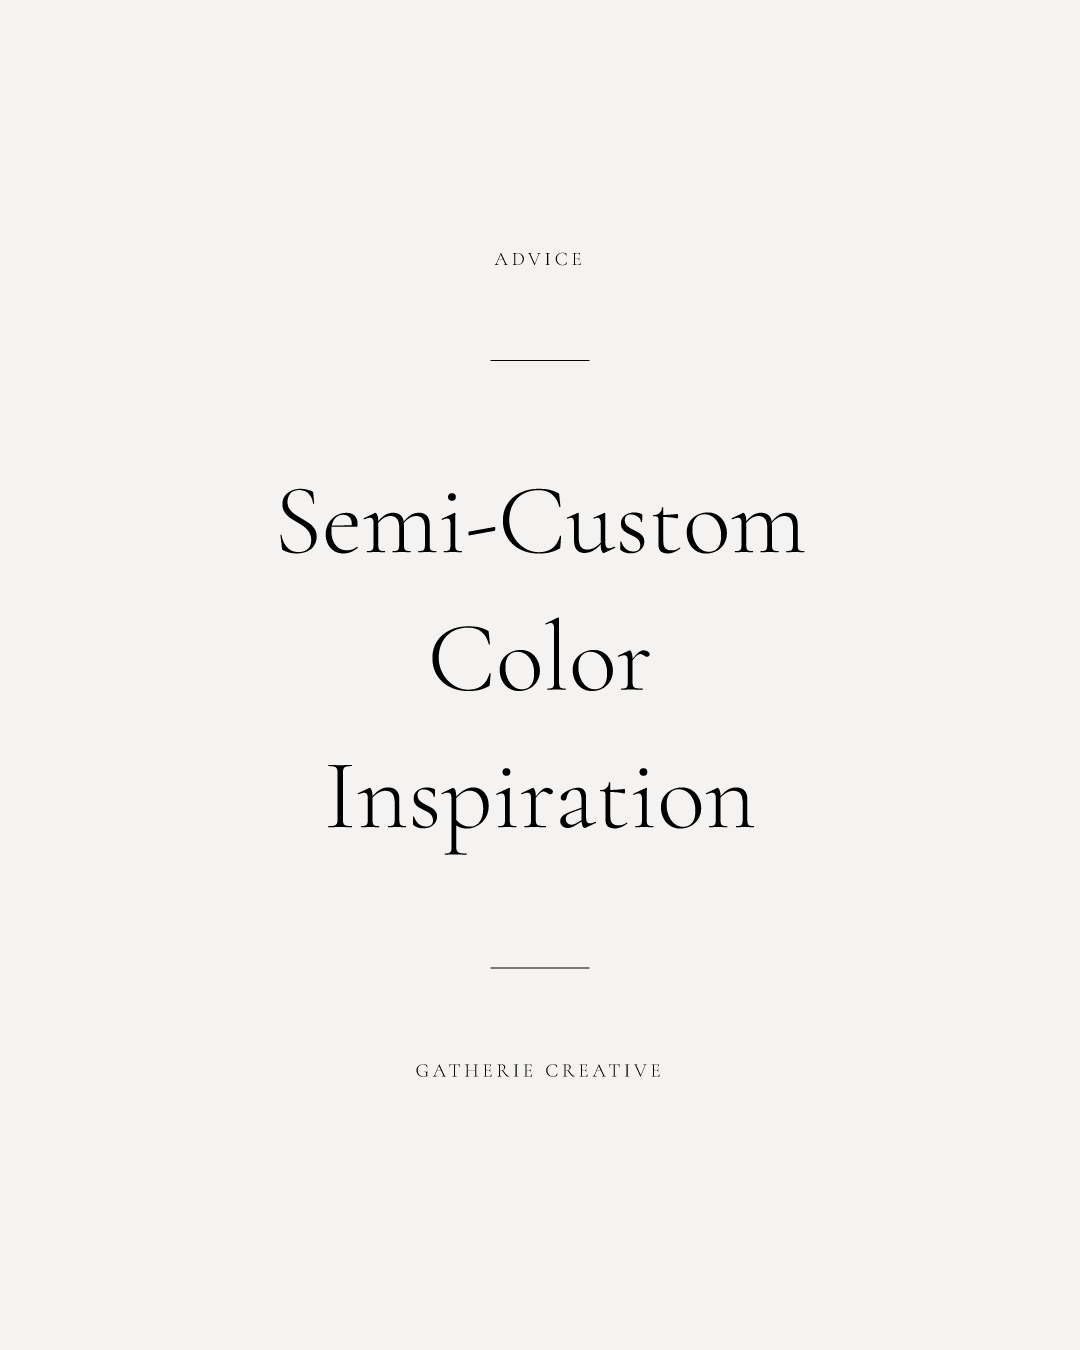 semi-custom color inspiration